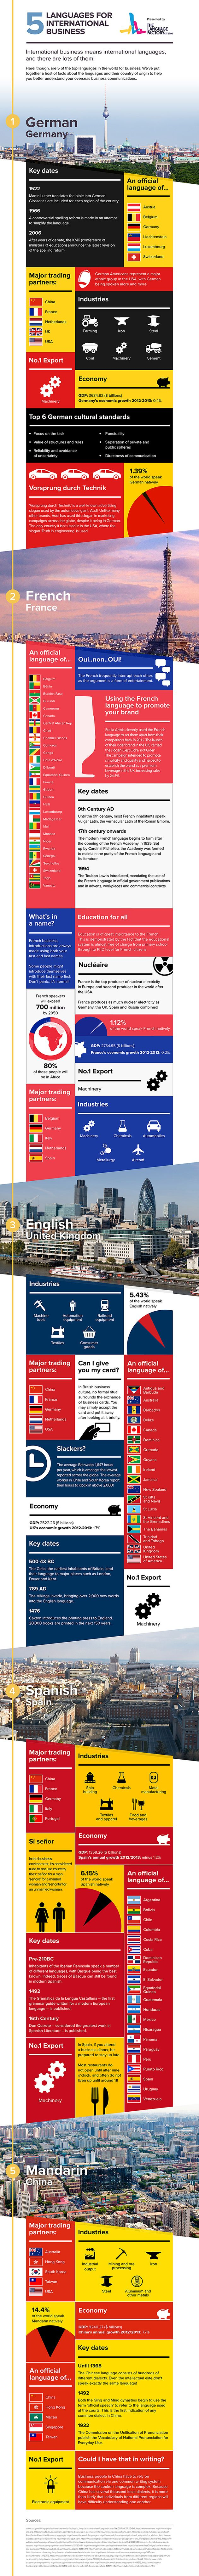 Check out this guest post and infographic on www.latg.org about some of the world's leading languages for international business.